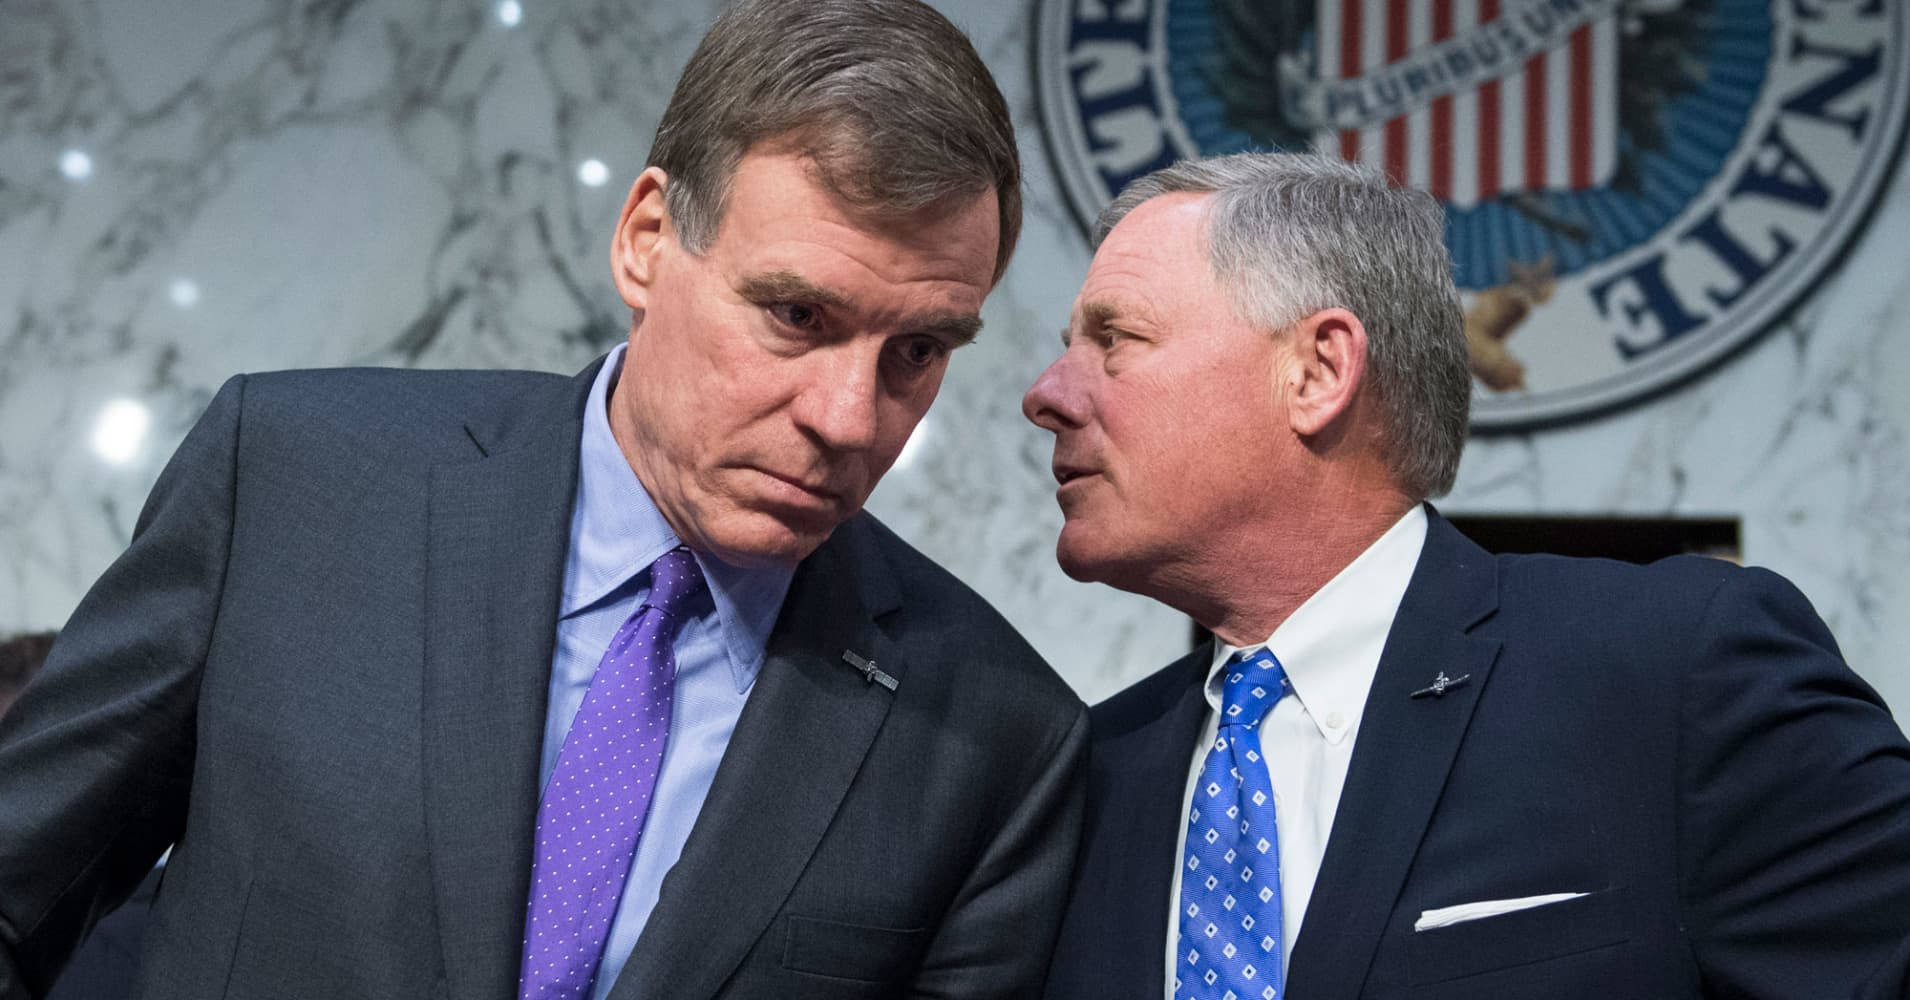 Chairman Richard Burr, R-N.C., right, and ranking member Sen. Mark Warner, D-Va. of the Senate (Select) Intelligence Committee.